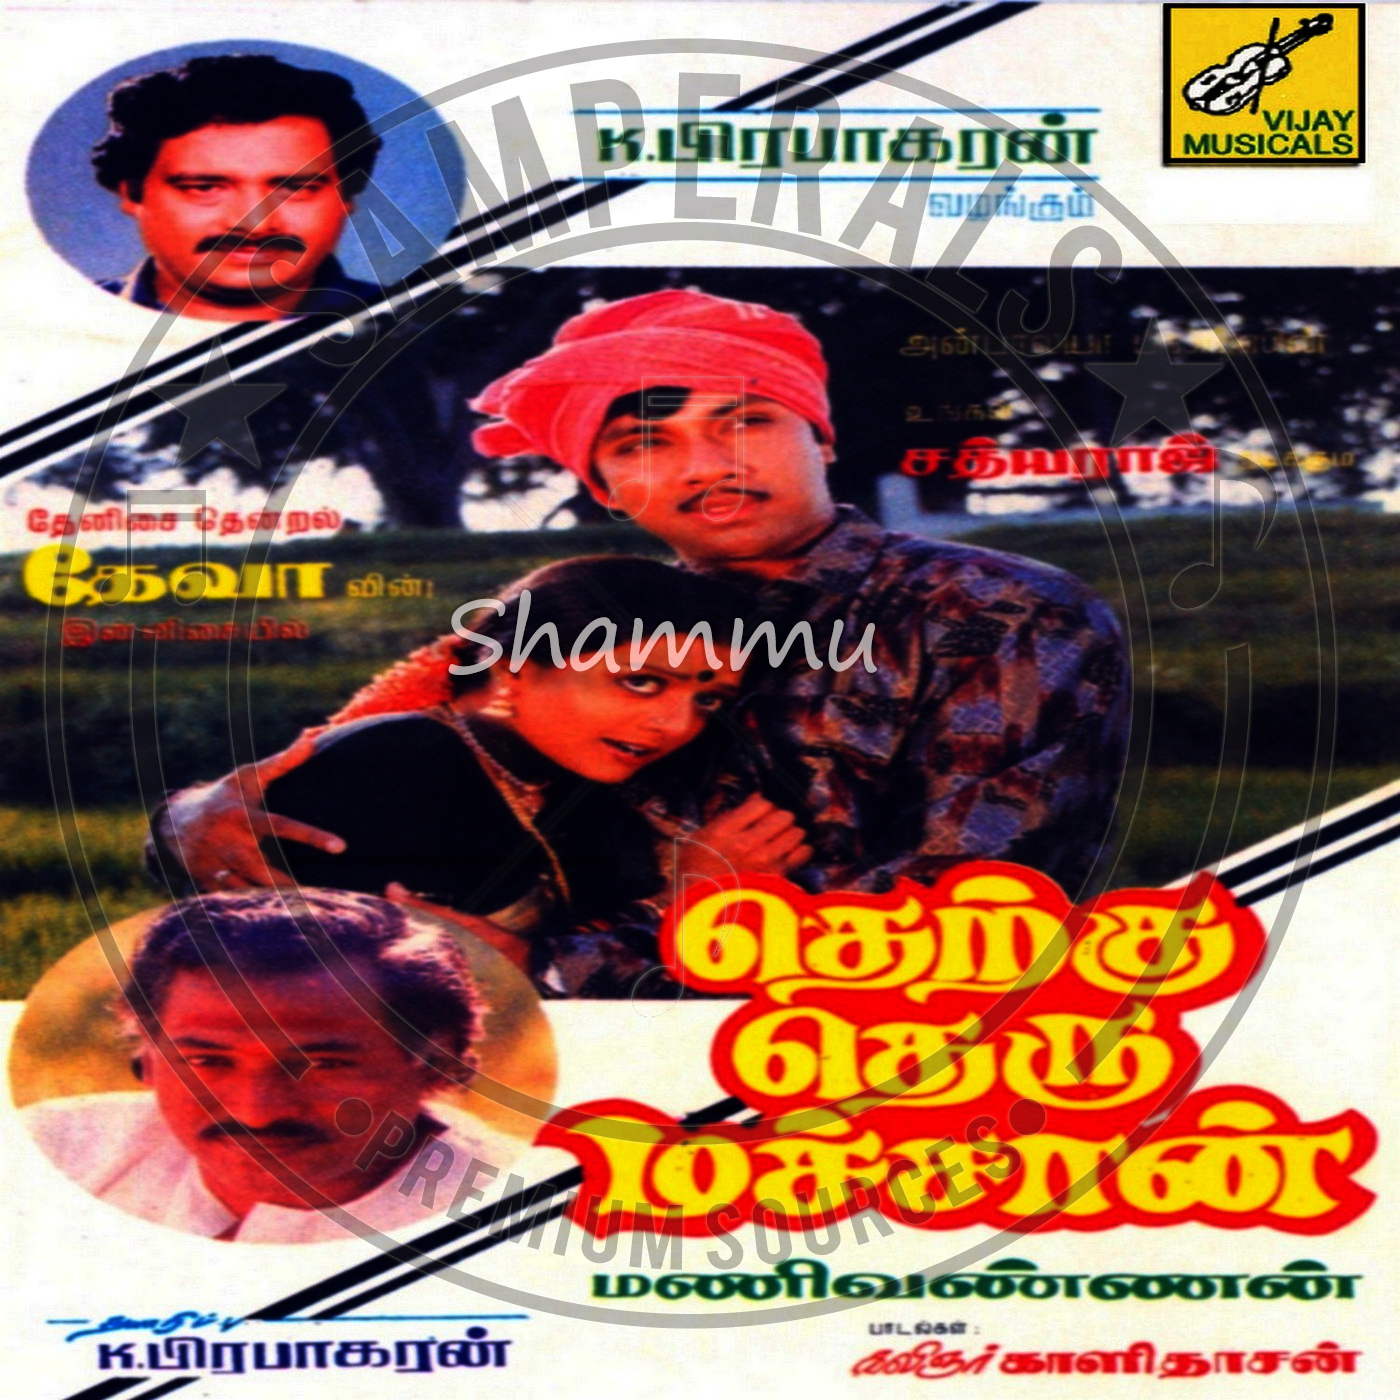 Therku Theru Machaan (1990) [Digital] [Vijay Musicals] - FLAC / WAV / Lossless Songs